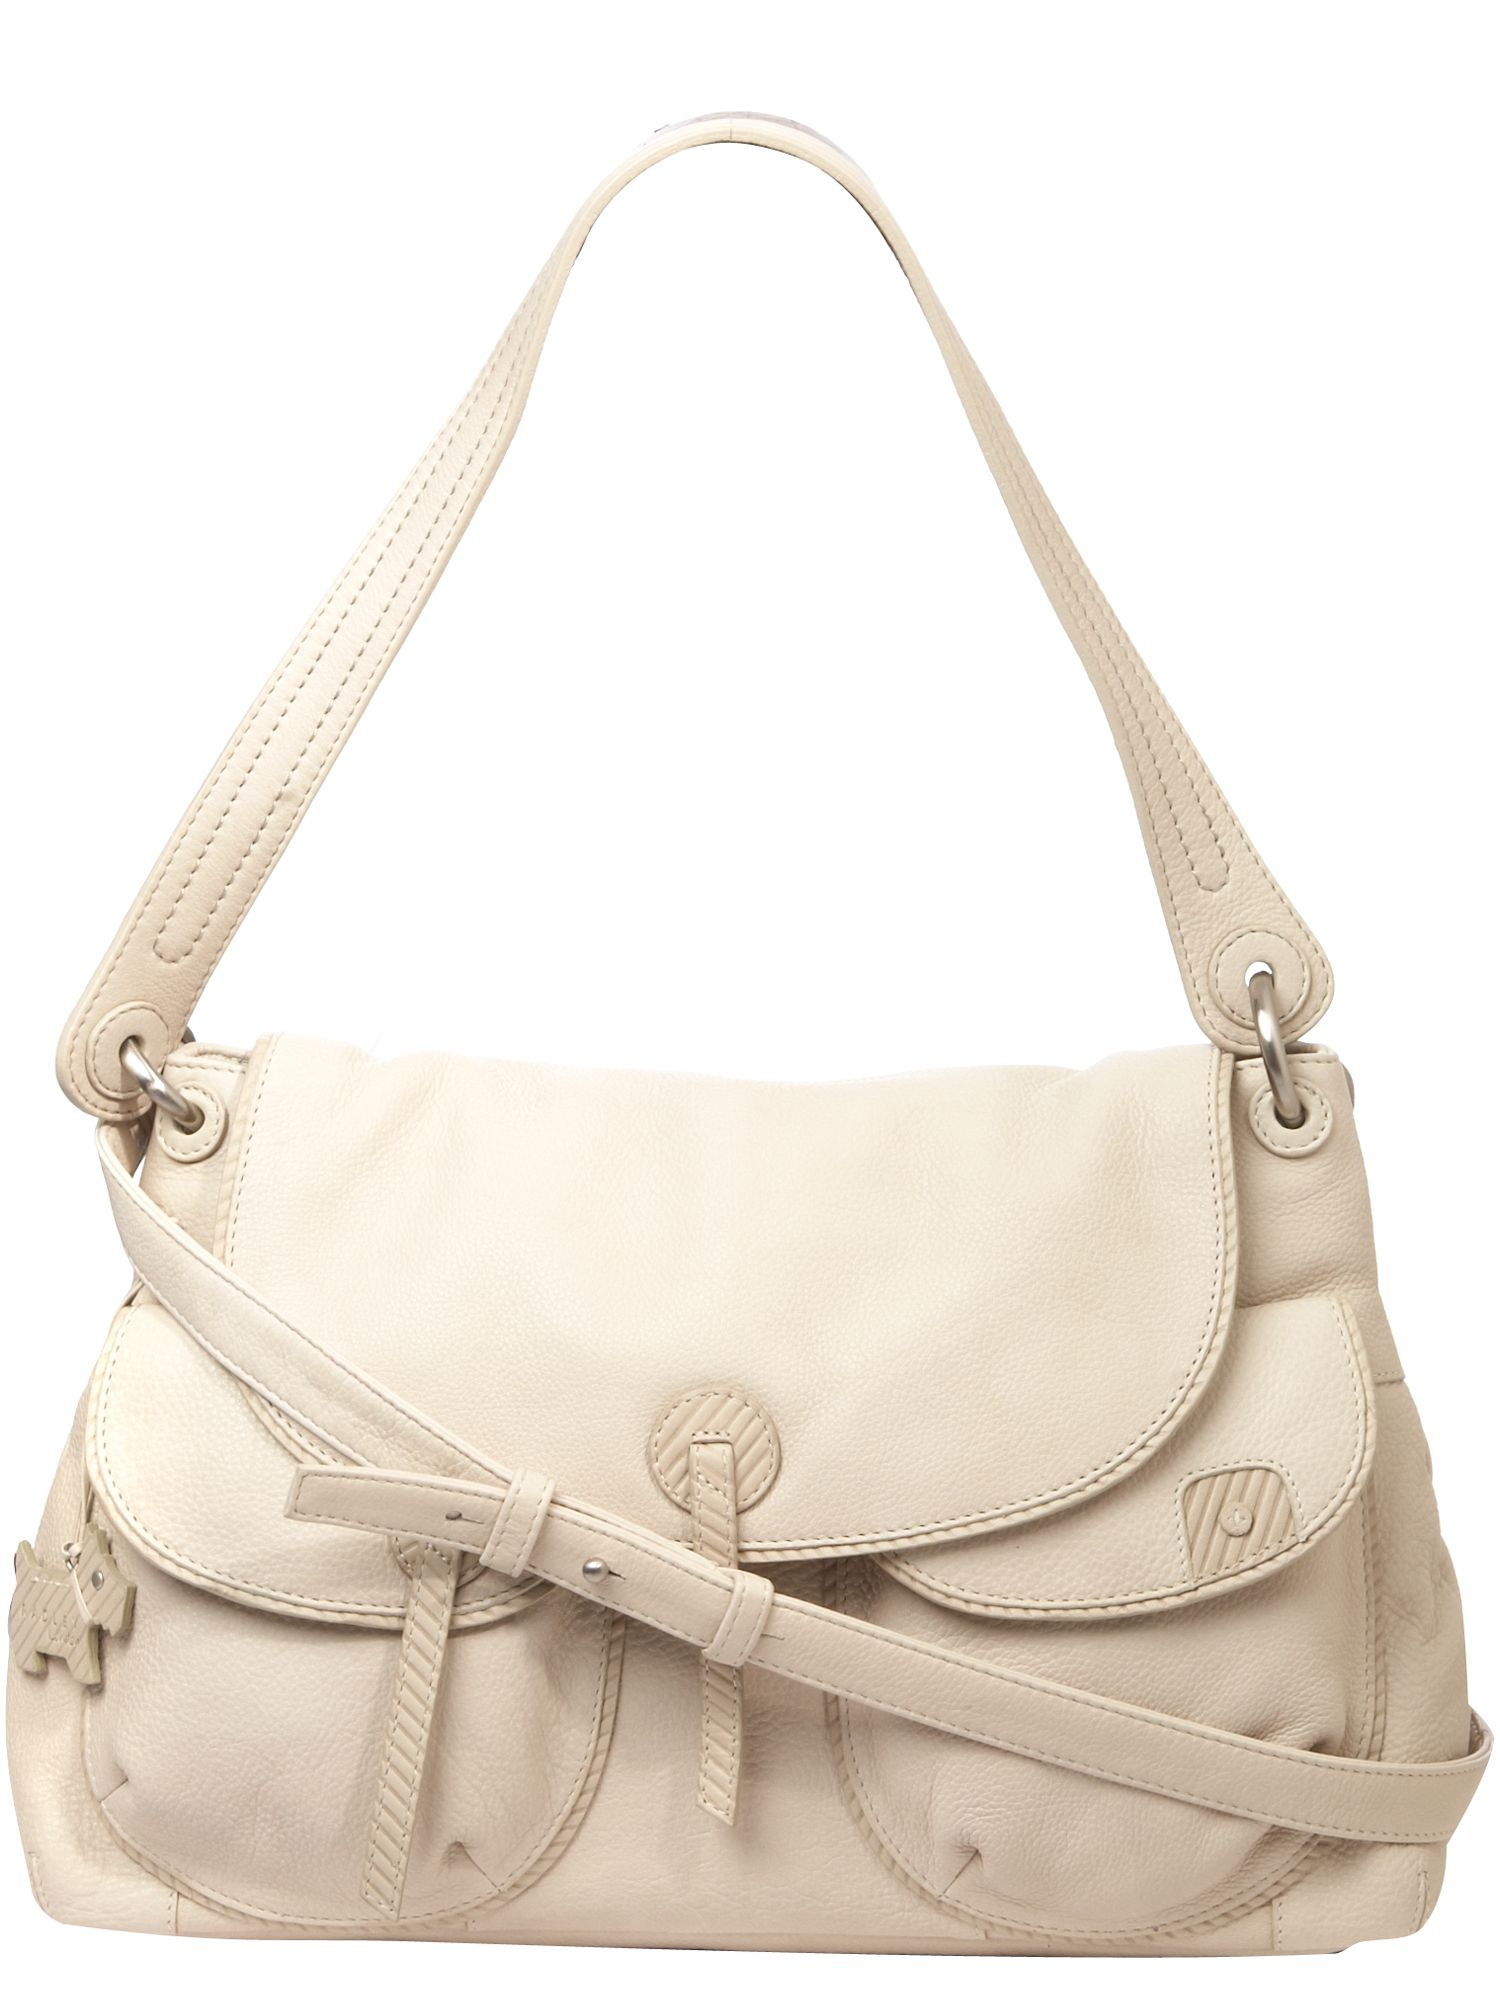 Pilkington Shoulder Hobo Bag